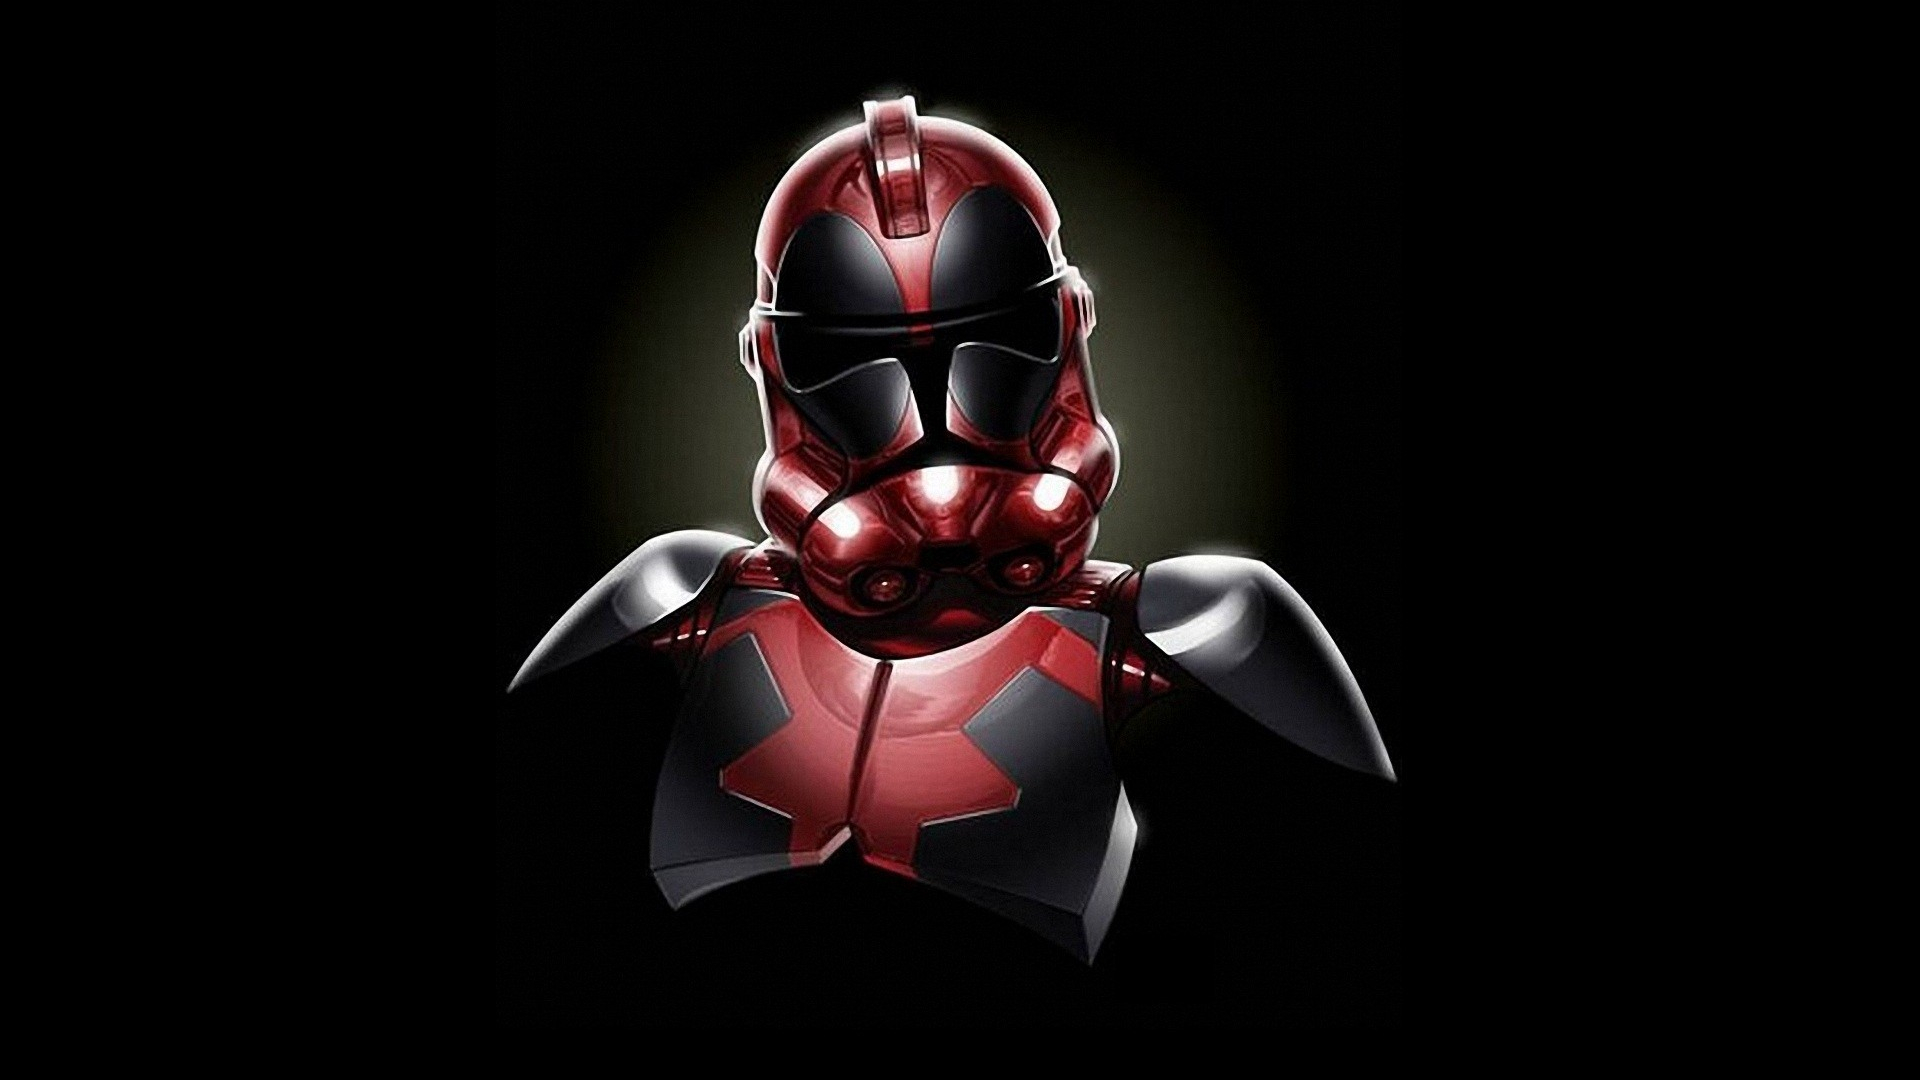 Free Download Clone Trooper Wallpaper 233852 1920x1200 For Your